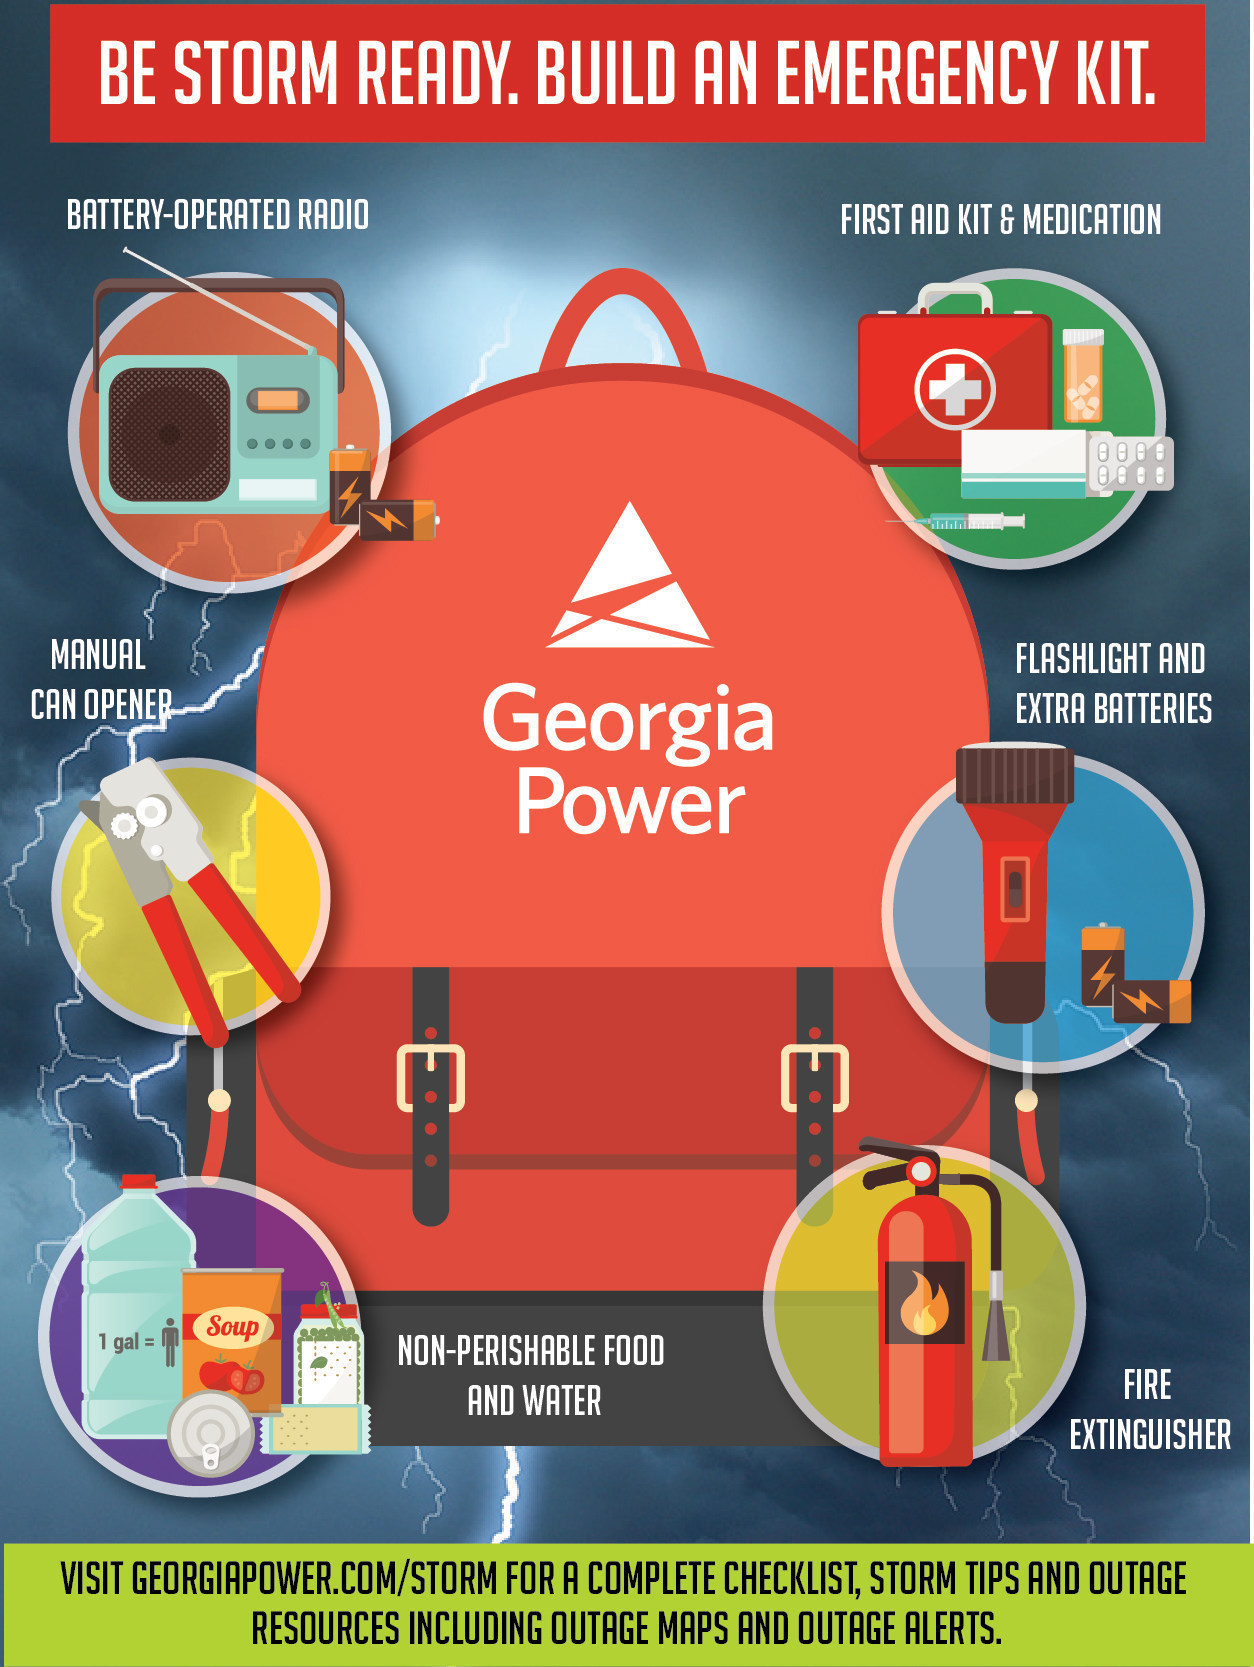 Visit GeorgiaPower.com/Storm for a complete checklist, storm tips and outage resources including Outage Maps and Outage Alerts. (PRNewsFoto/Georgia Power)